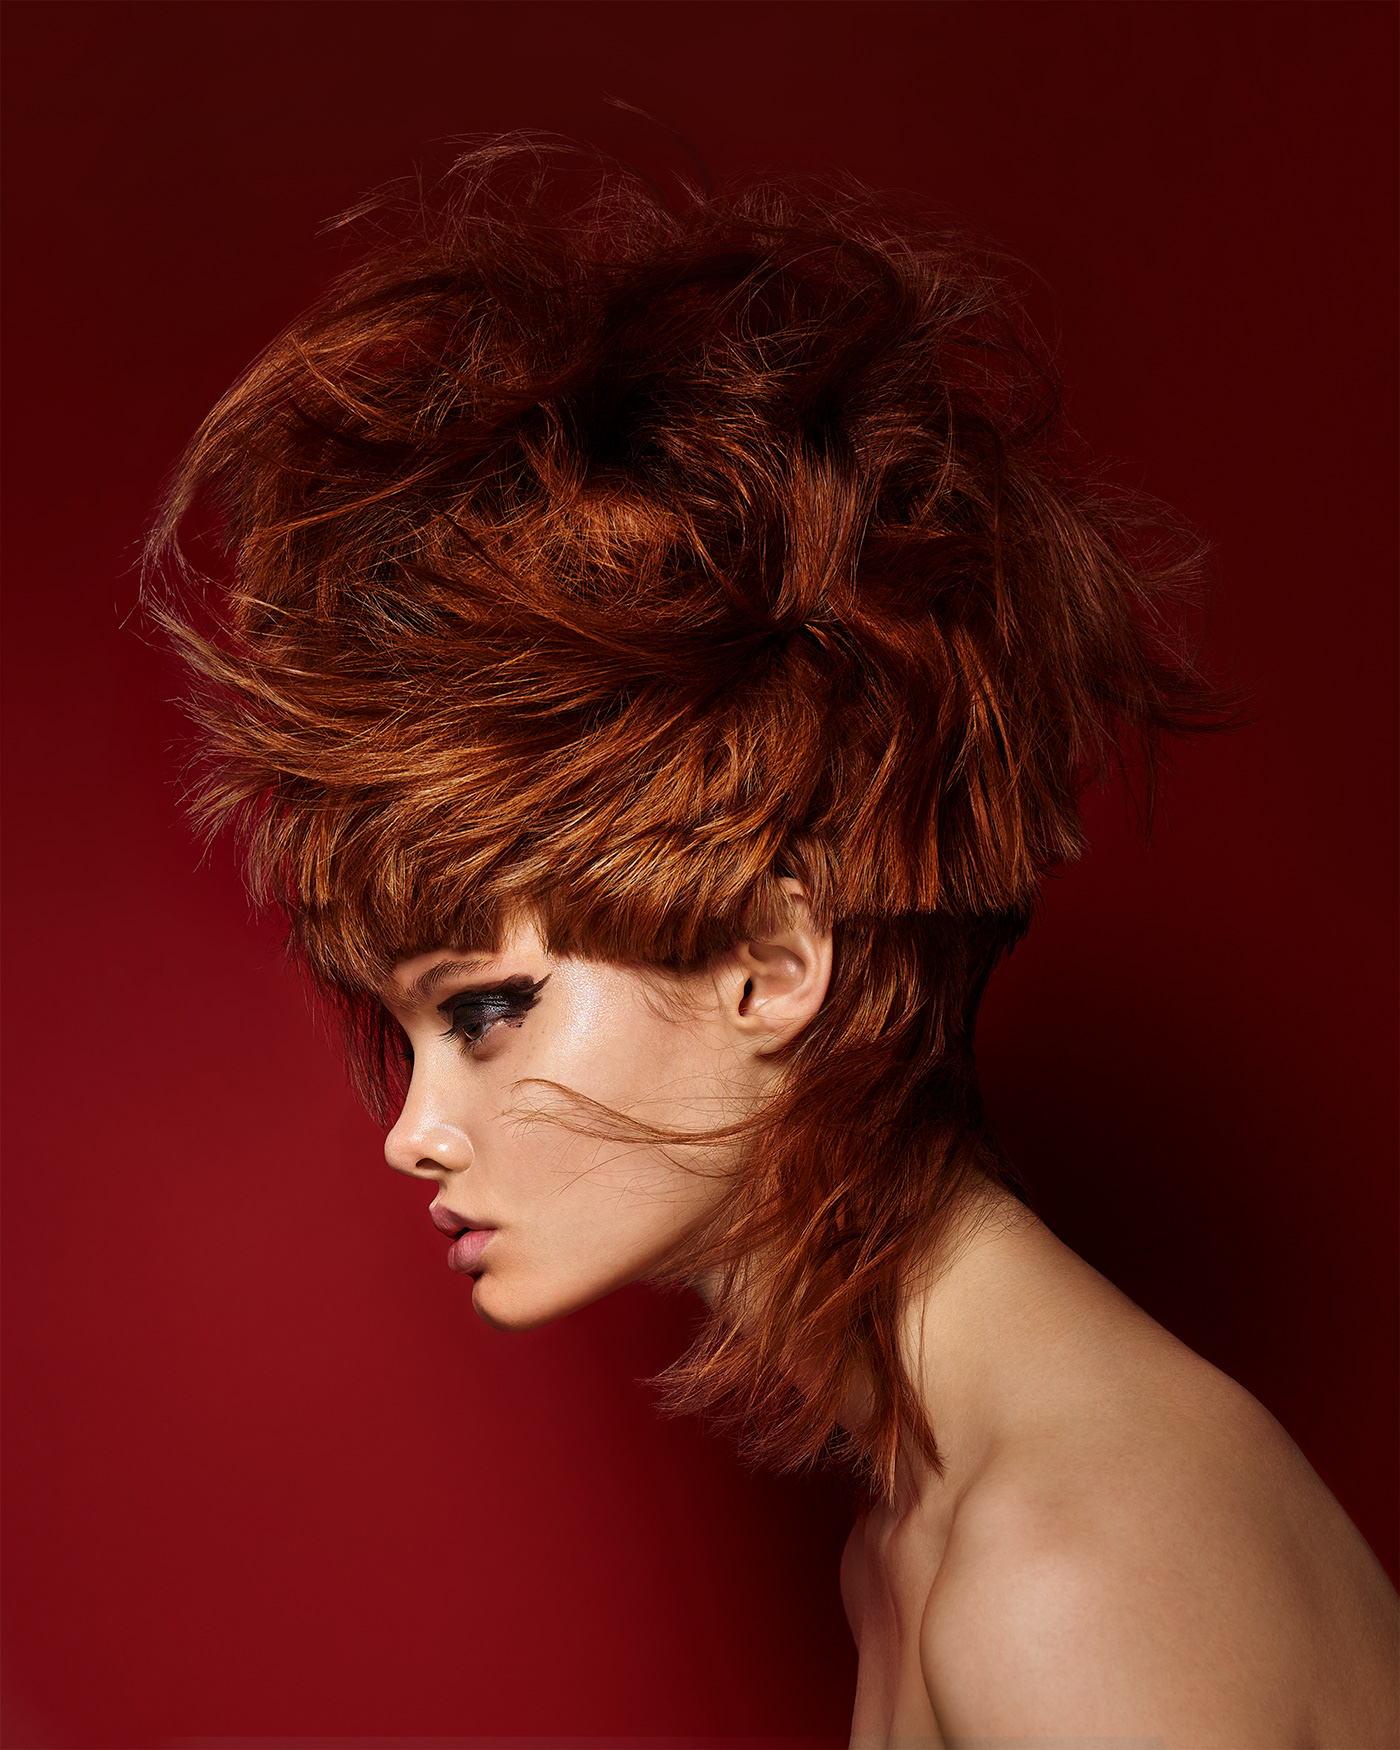 Hair by Felix Fischer